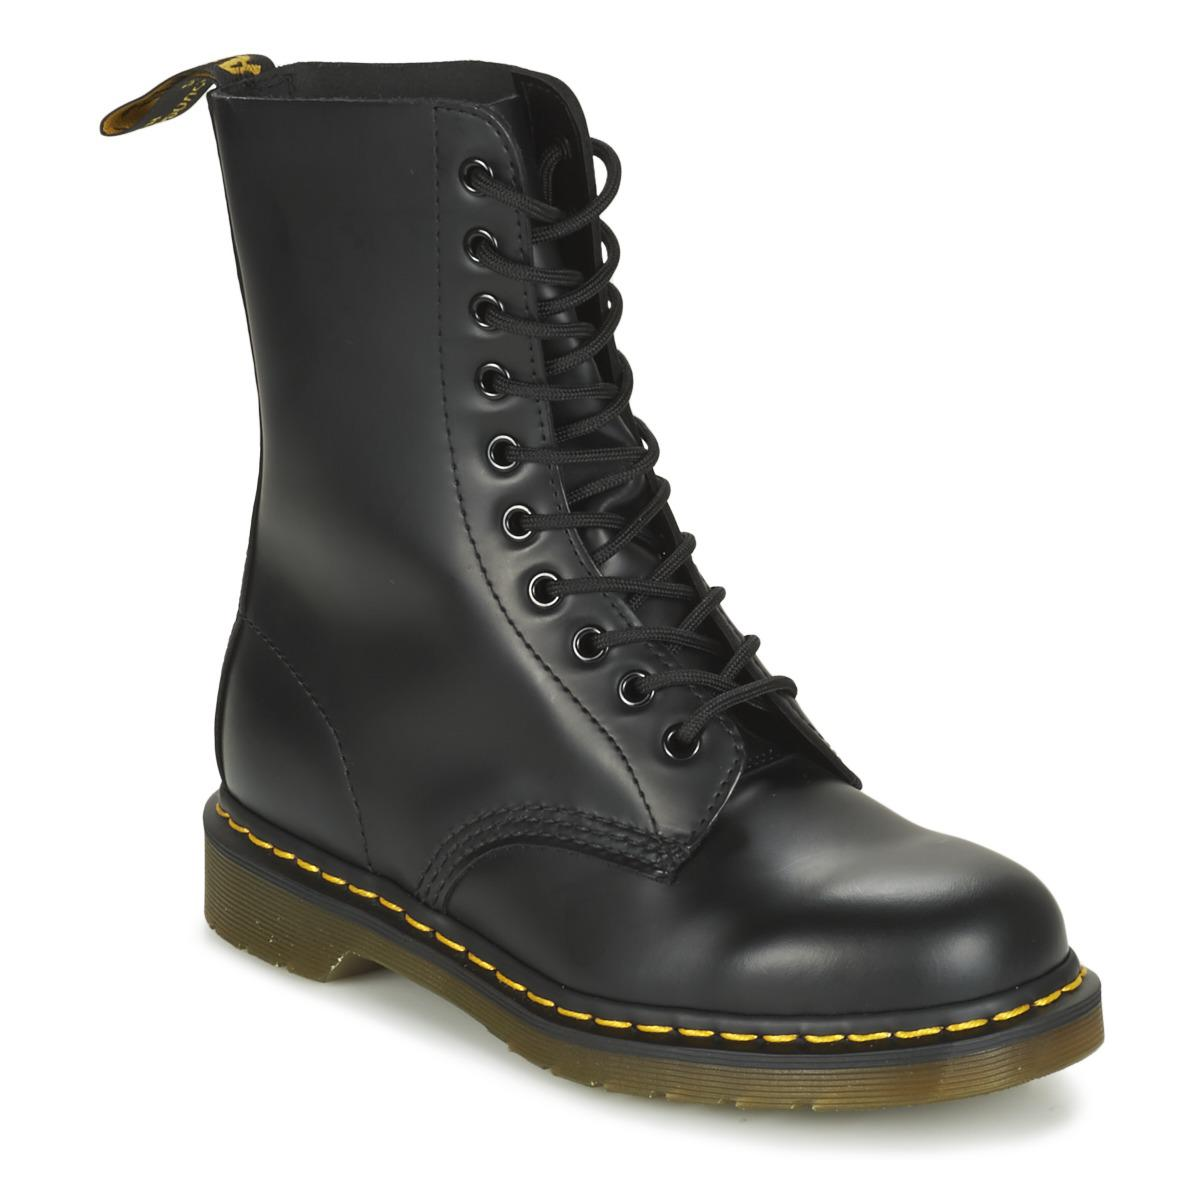 Dr. Martens Leather 1490 Mid Boots in Black